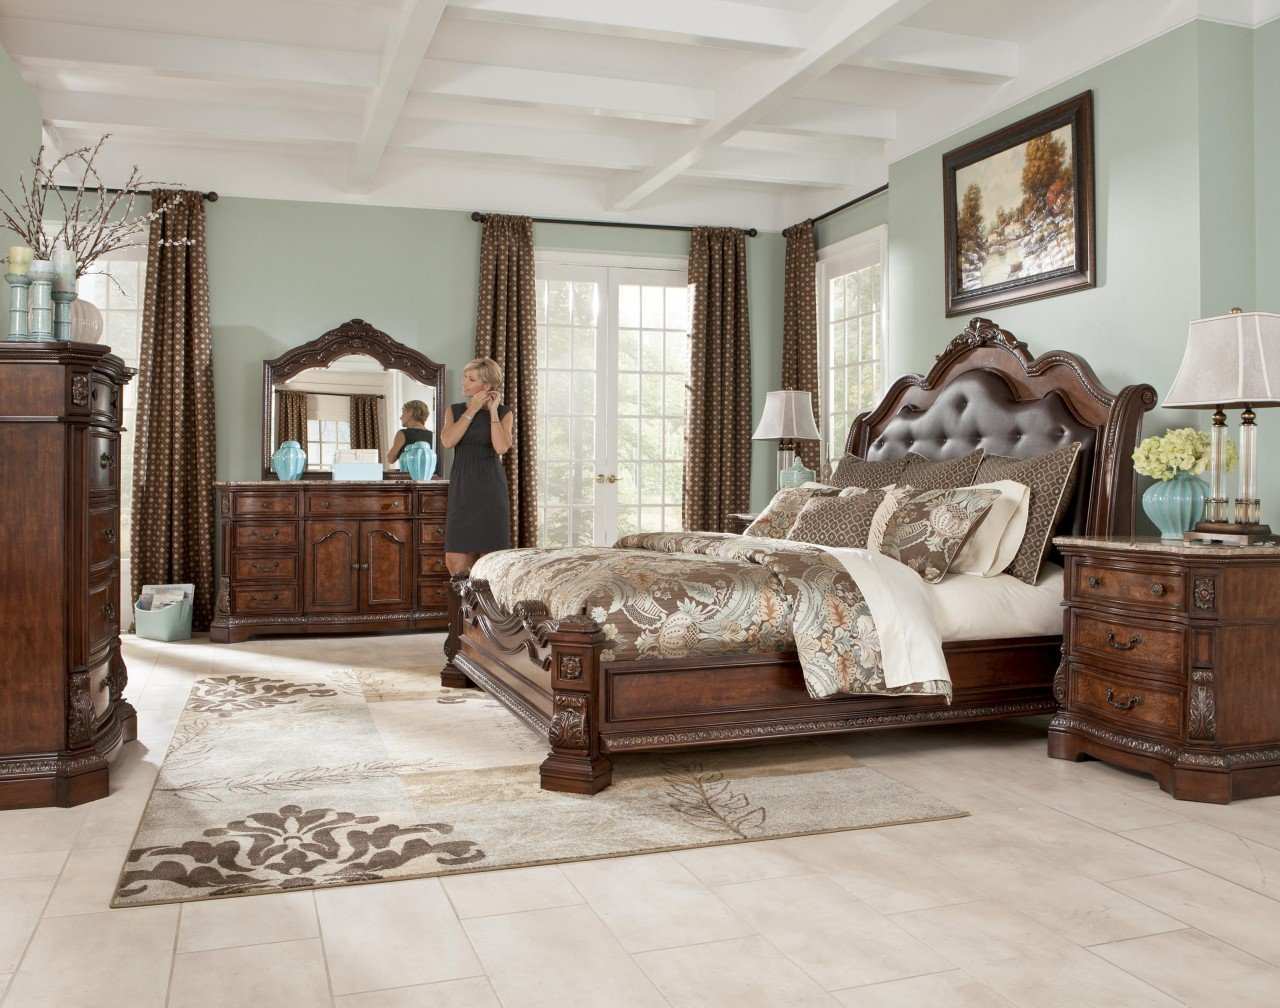 King Sleigh Bed Bedroom Sets Home Furniture Design